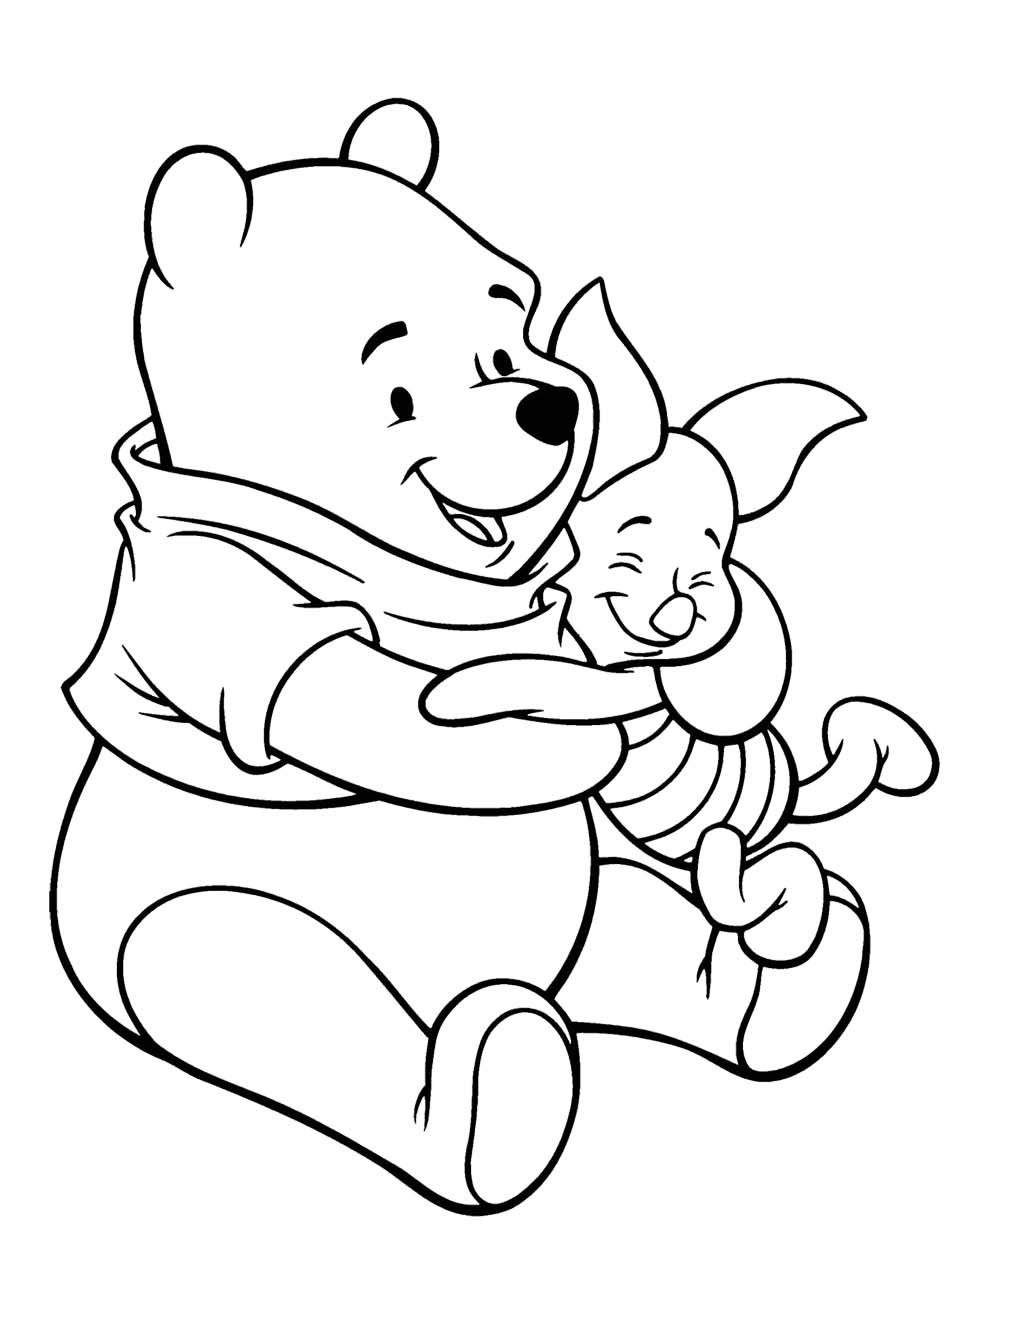 Piglet Coloring Pages Best Coloring